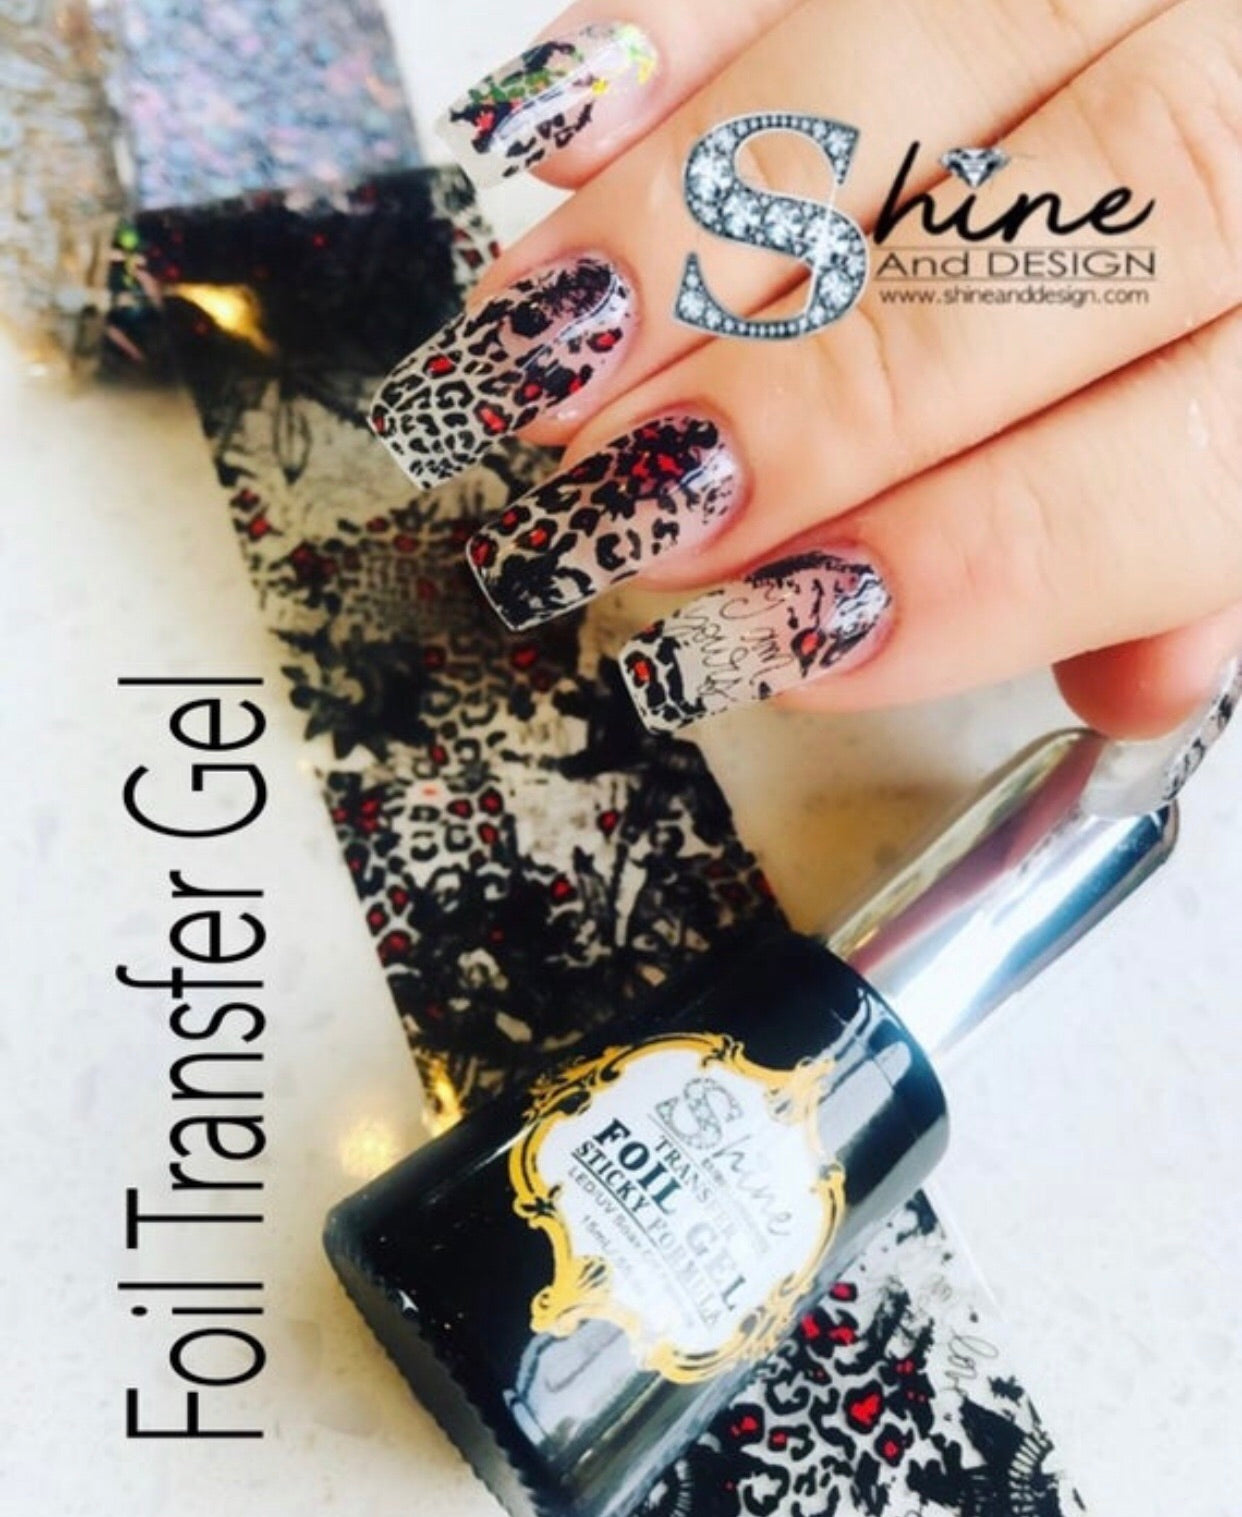 SHINE Foil Gel- Used for Transfer Designs Nail Art